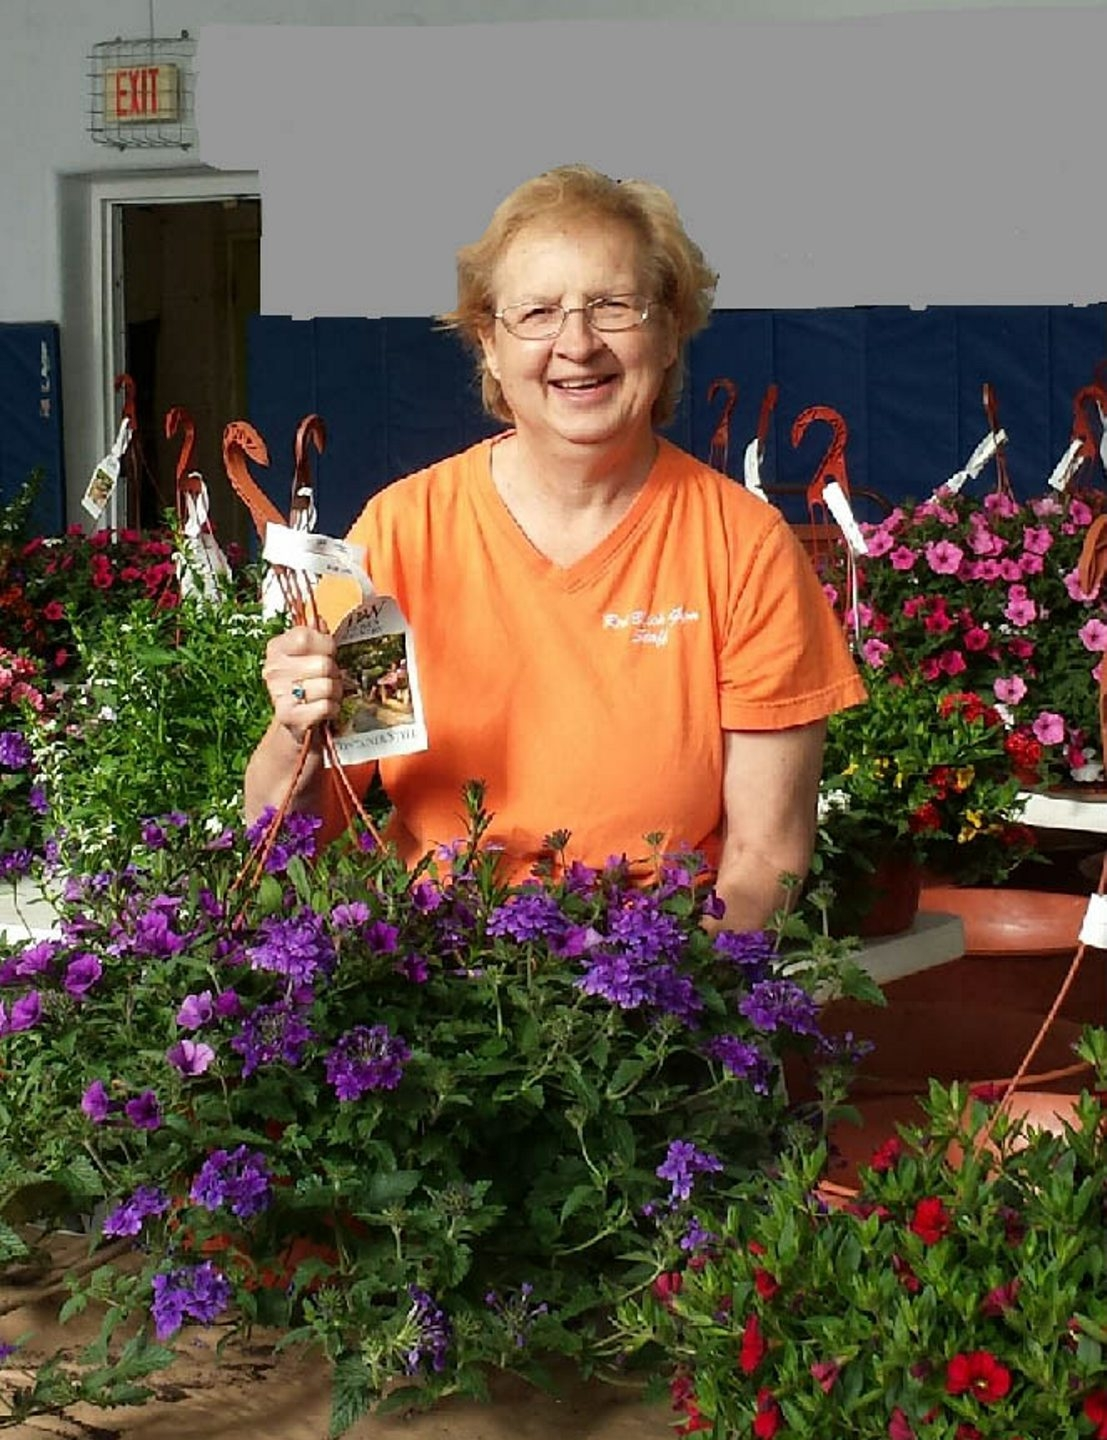 Marianne Gitterman is stepping down after more than two decades of serving as the Village of Lewiston's director of recreation.